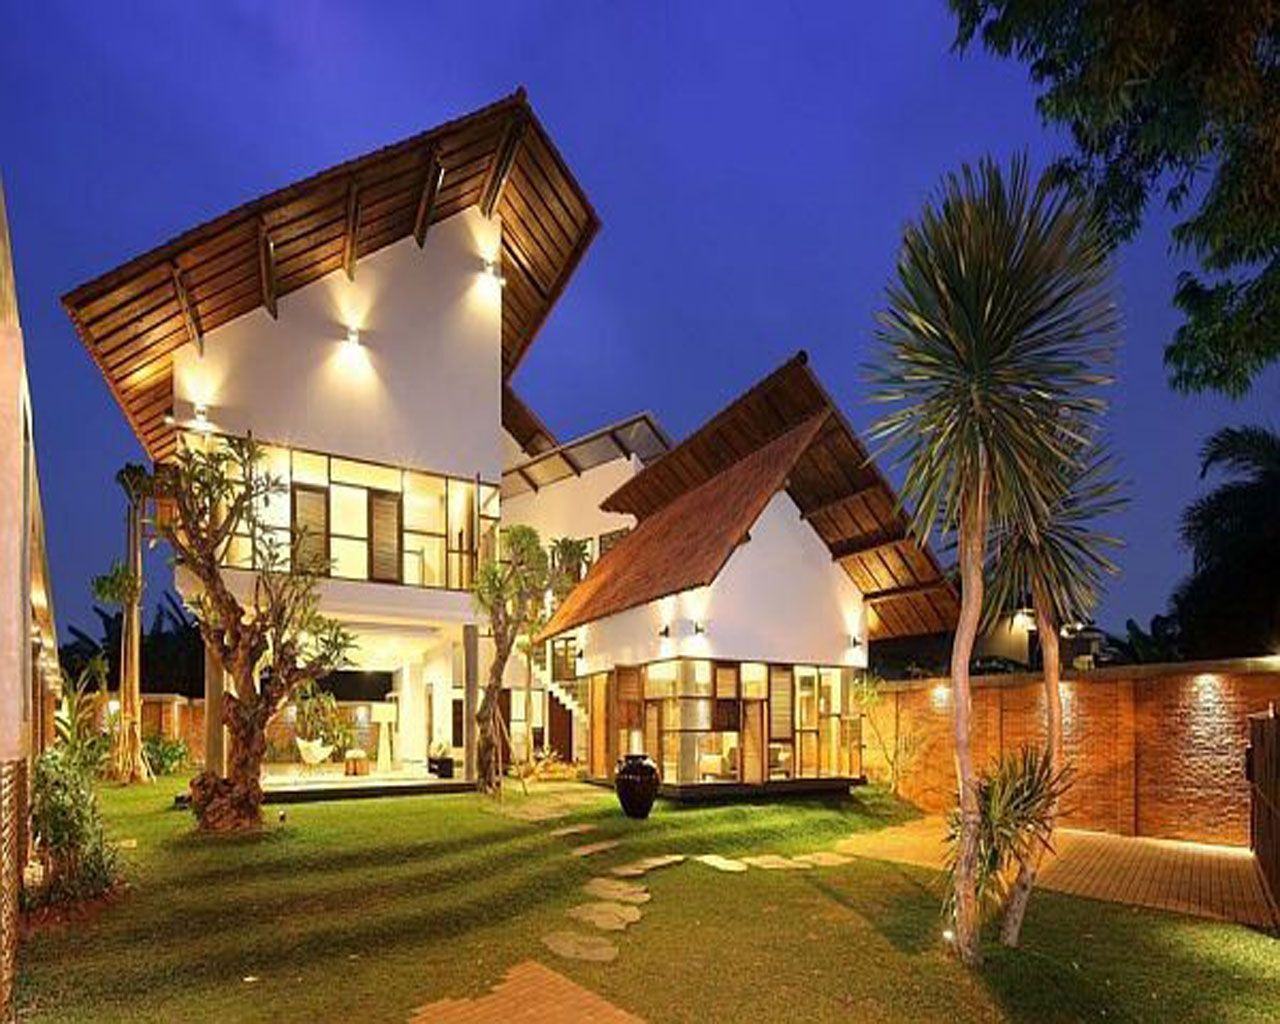 Architecture ideas 30 inspiration tropical house design for Home building architects